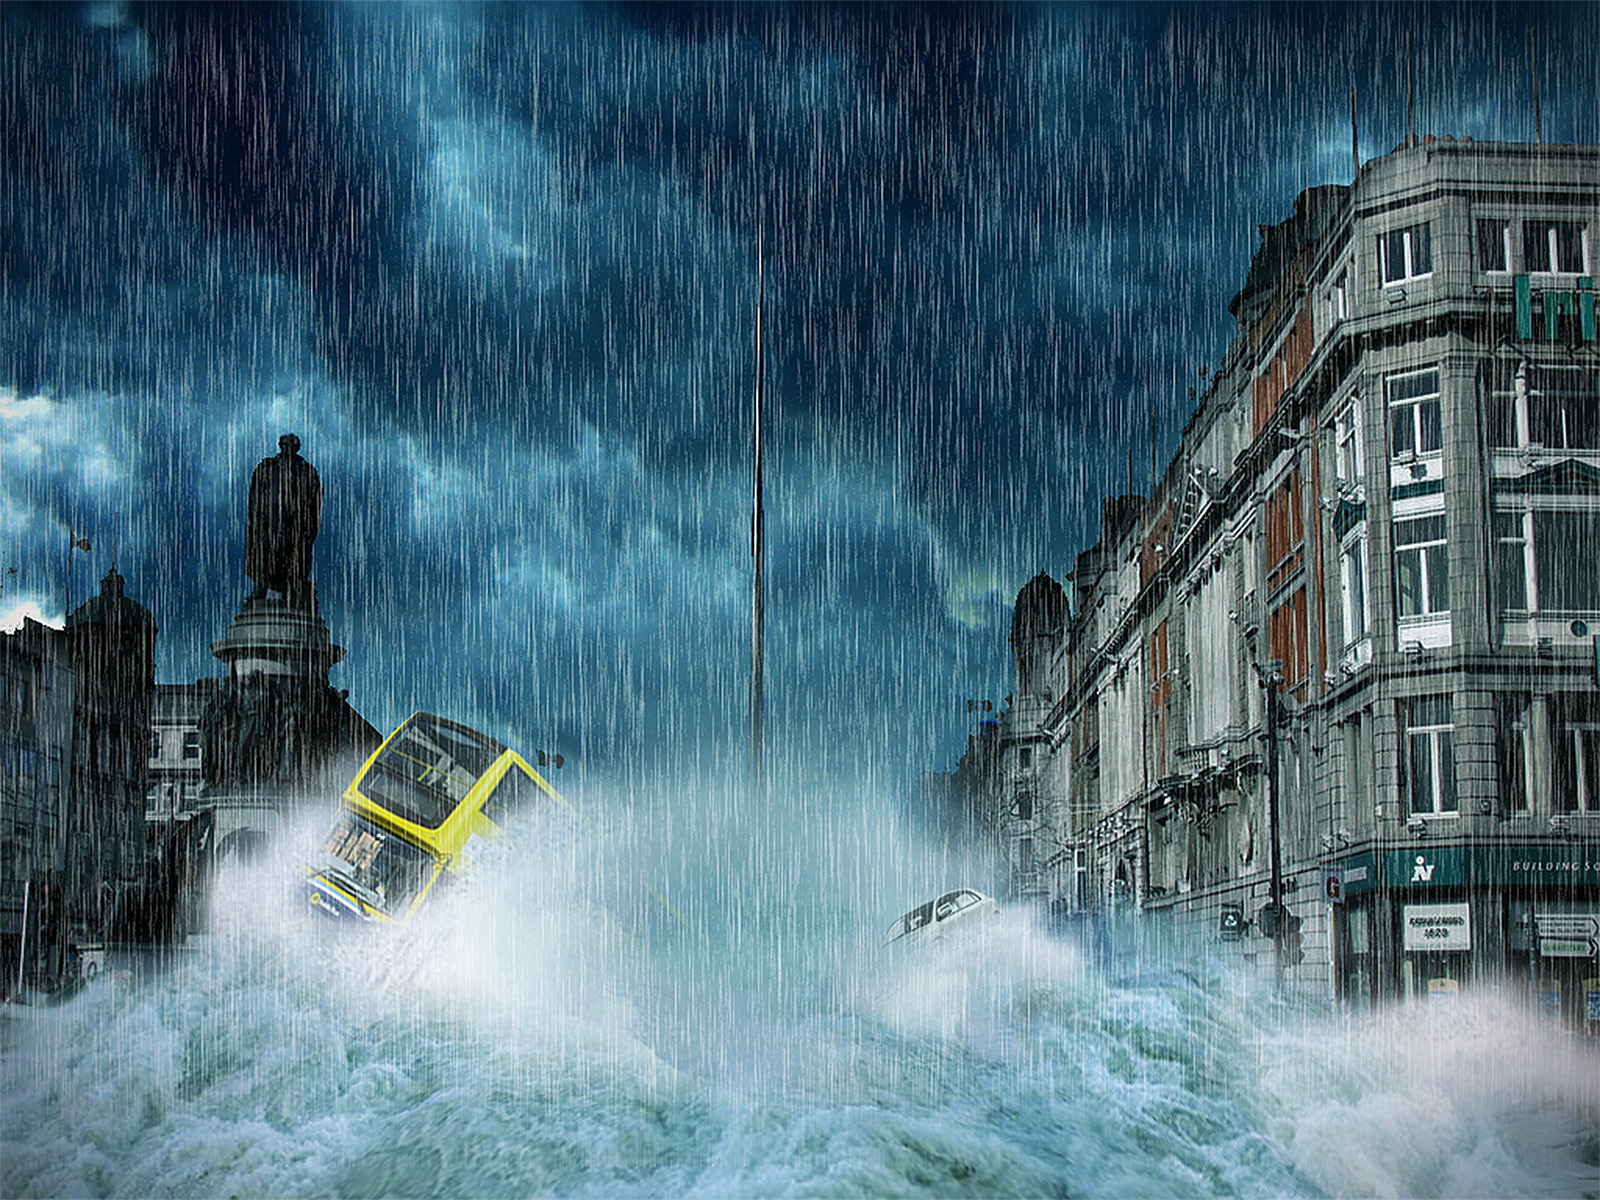 O' Connell Street Flood by Aoife Hester | Irish Times Photographer of the year Picturk Pic